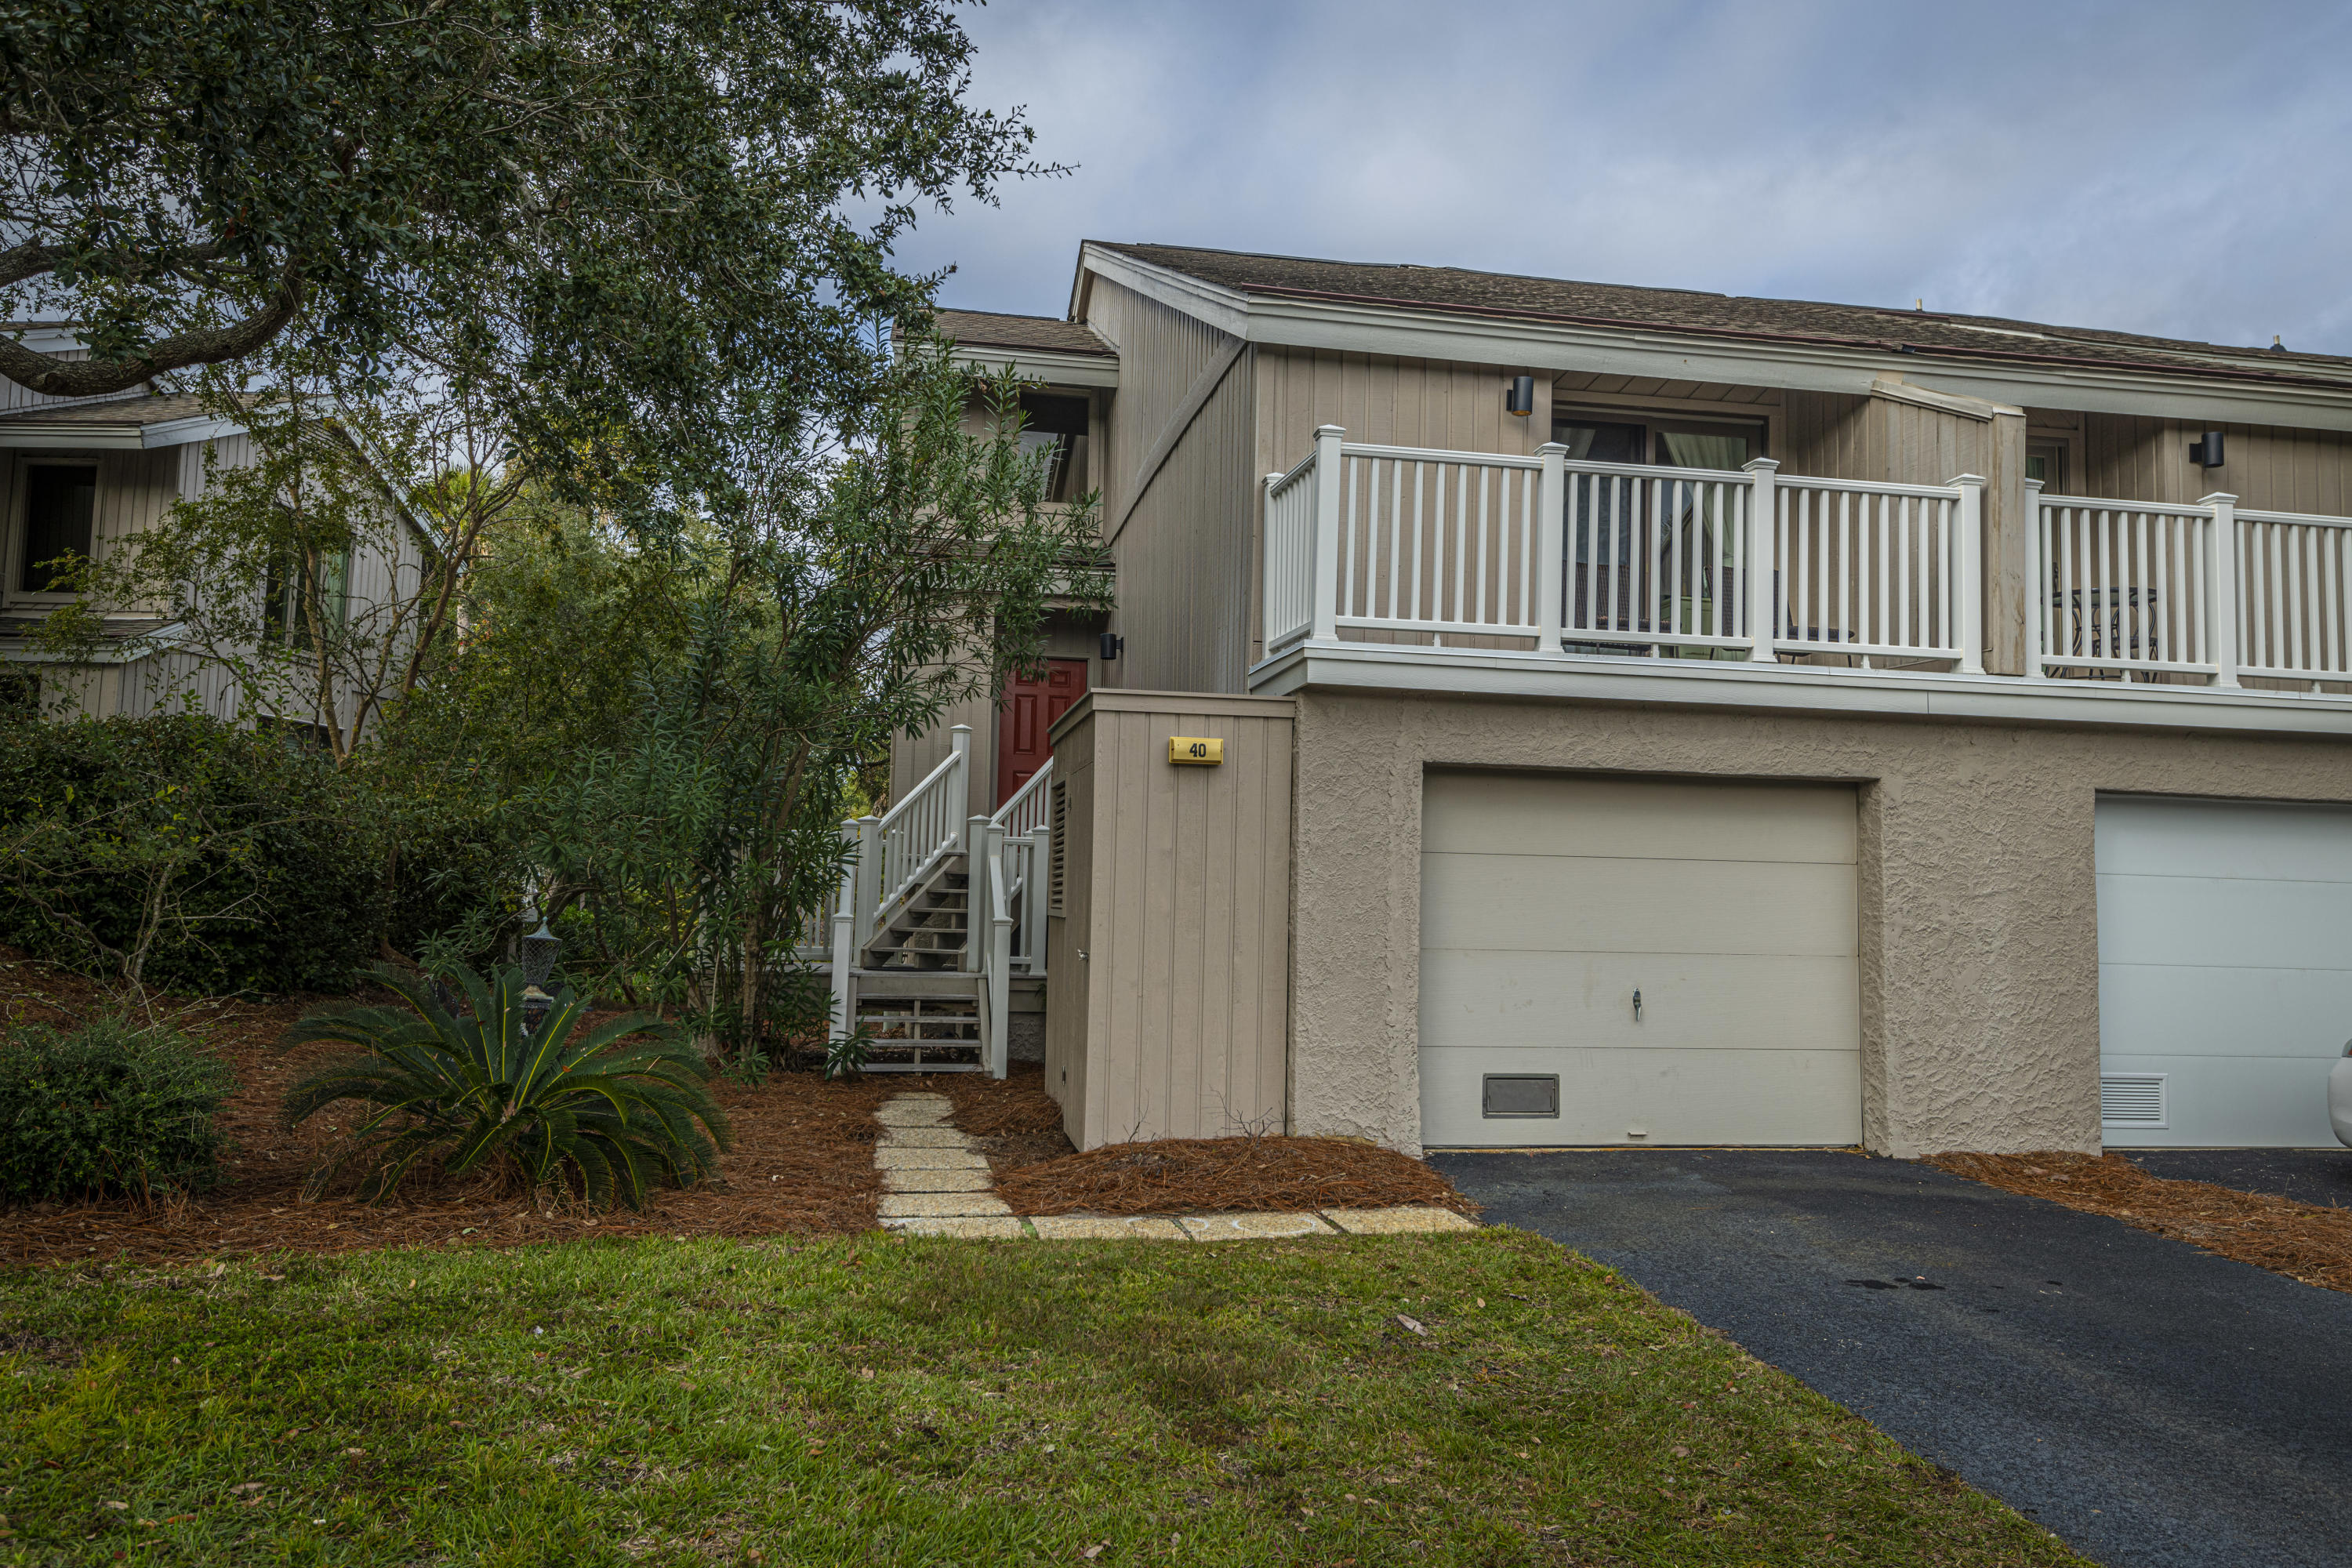 40 Back Court Isle Of Palms, SC 29451